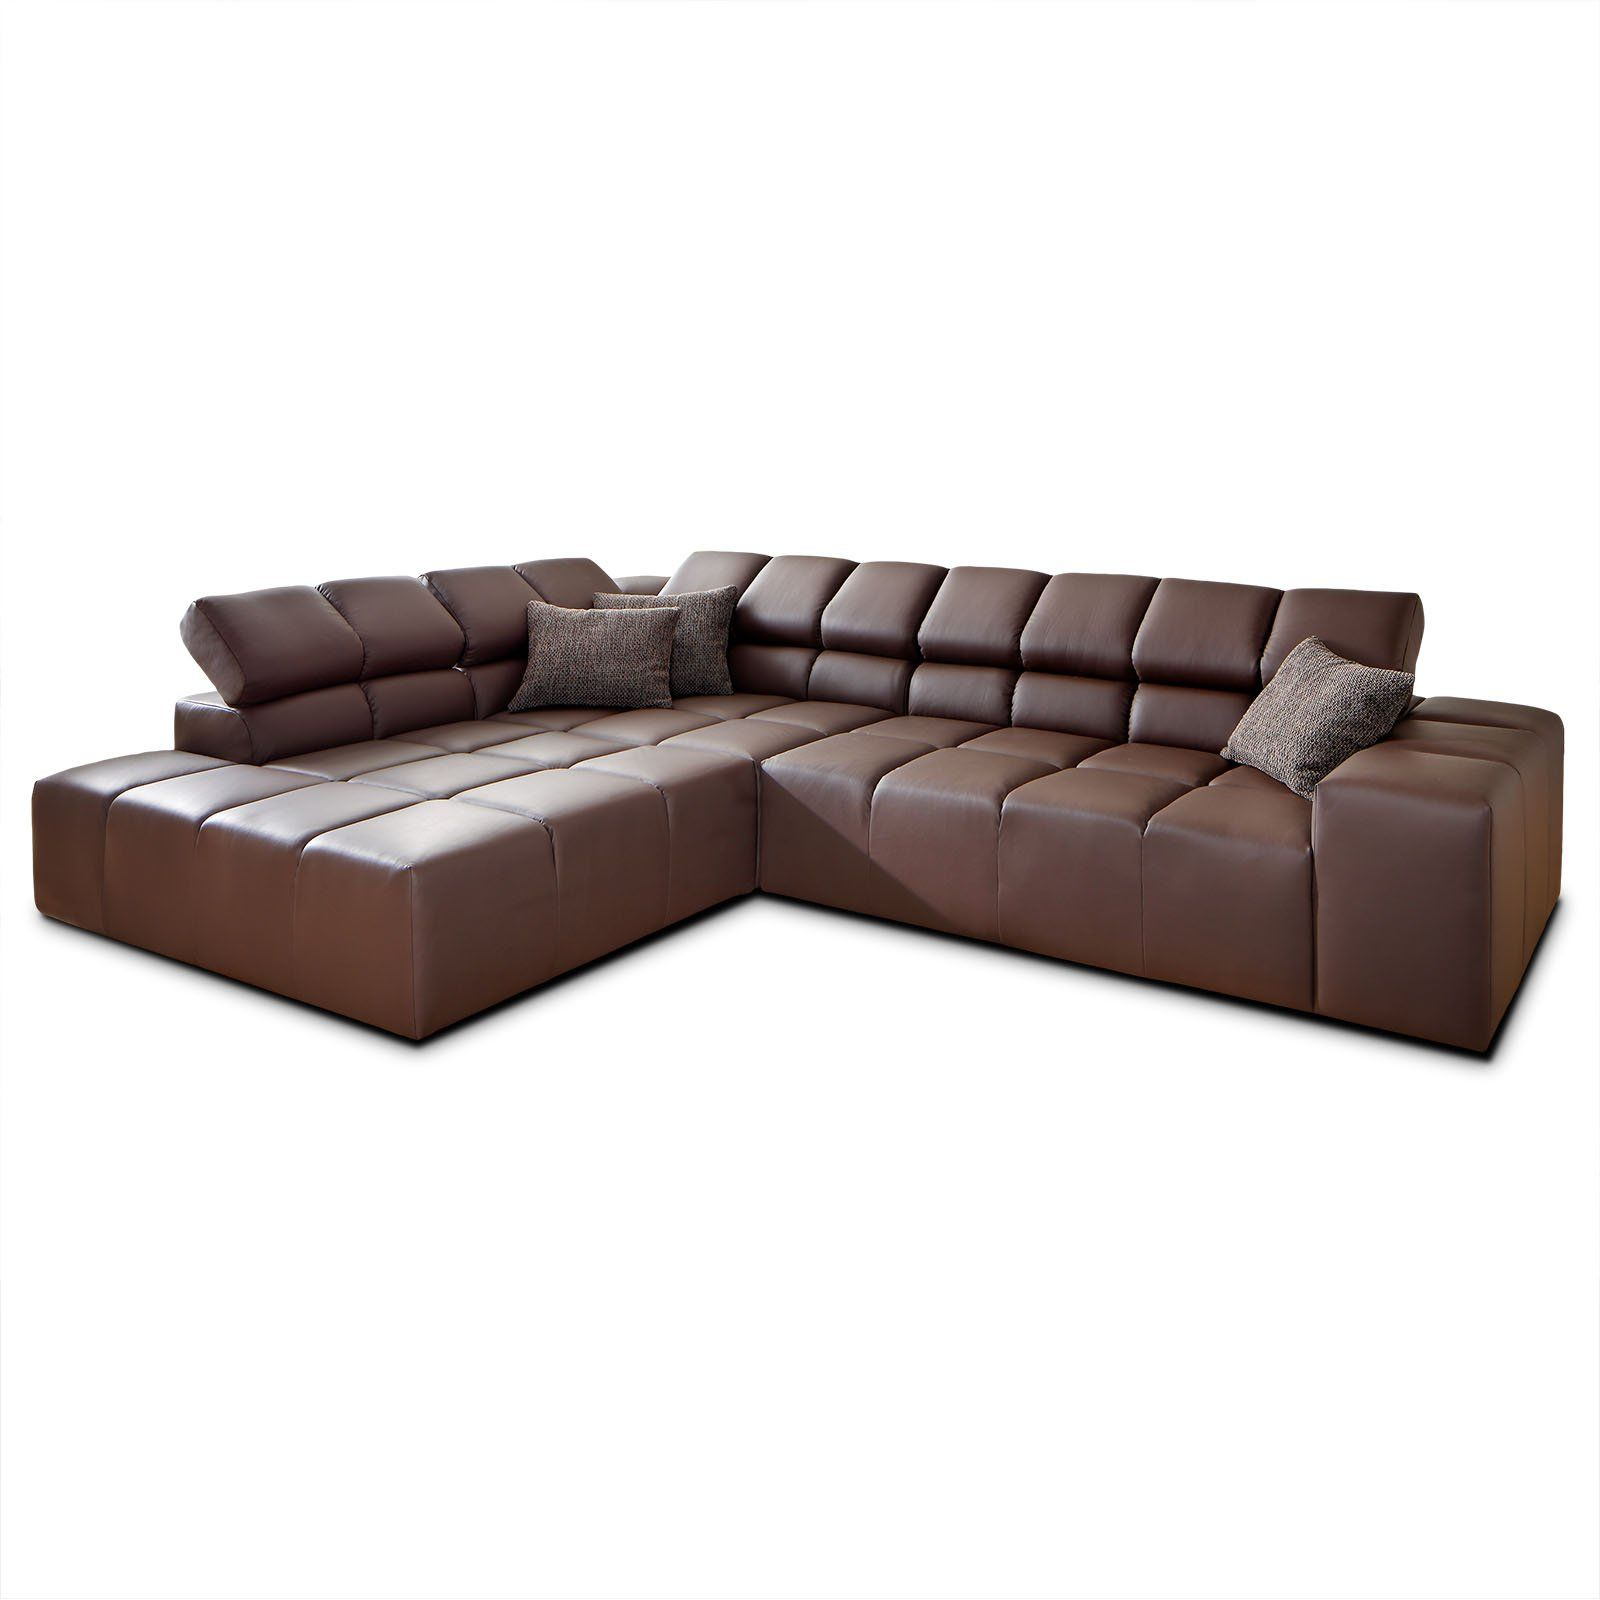 76 Besser Leder Ecksofa Braun Sofa Design Couch Sectional Couch